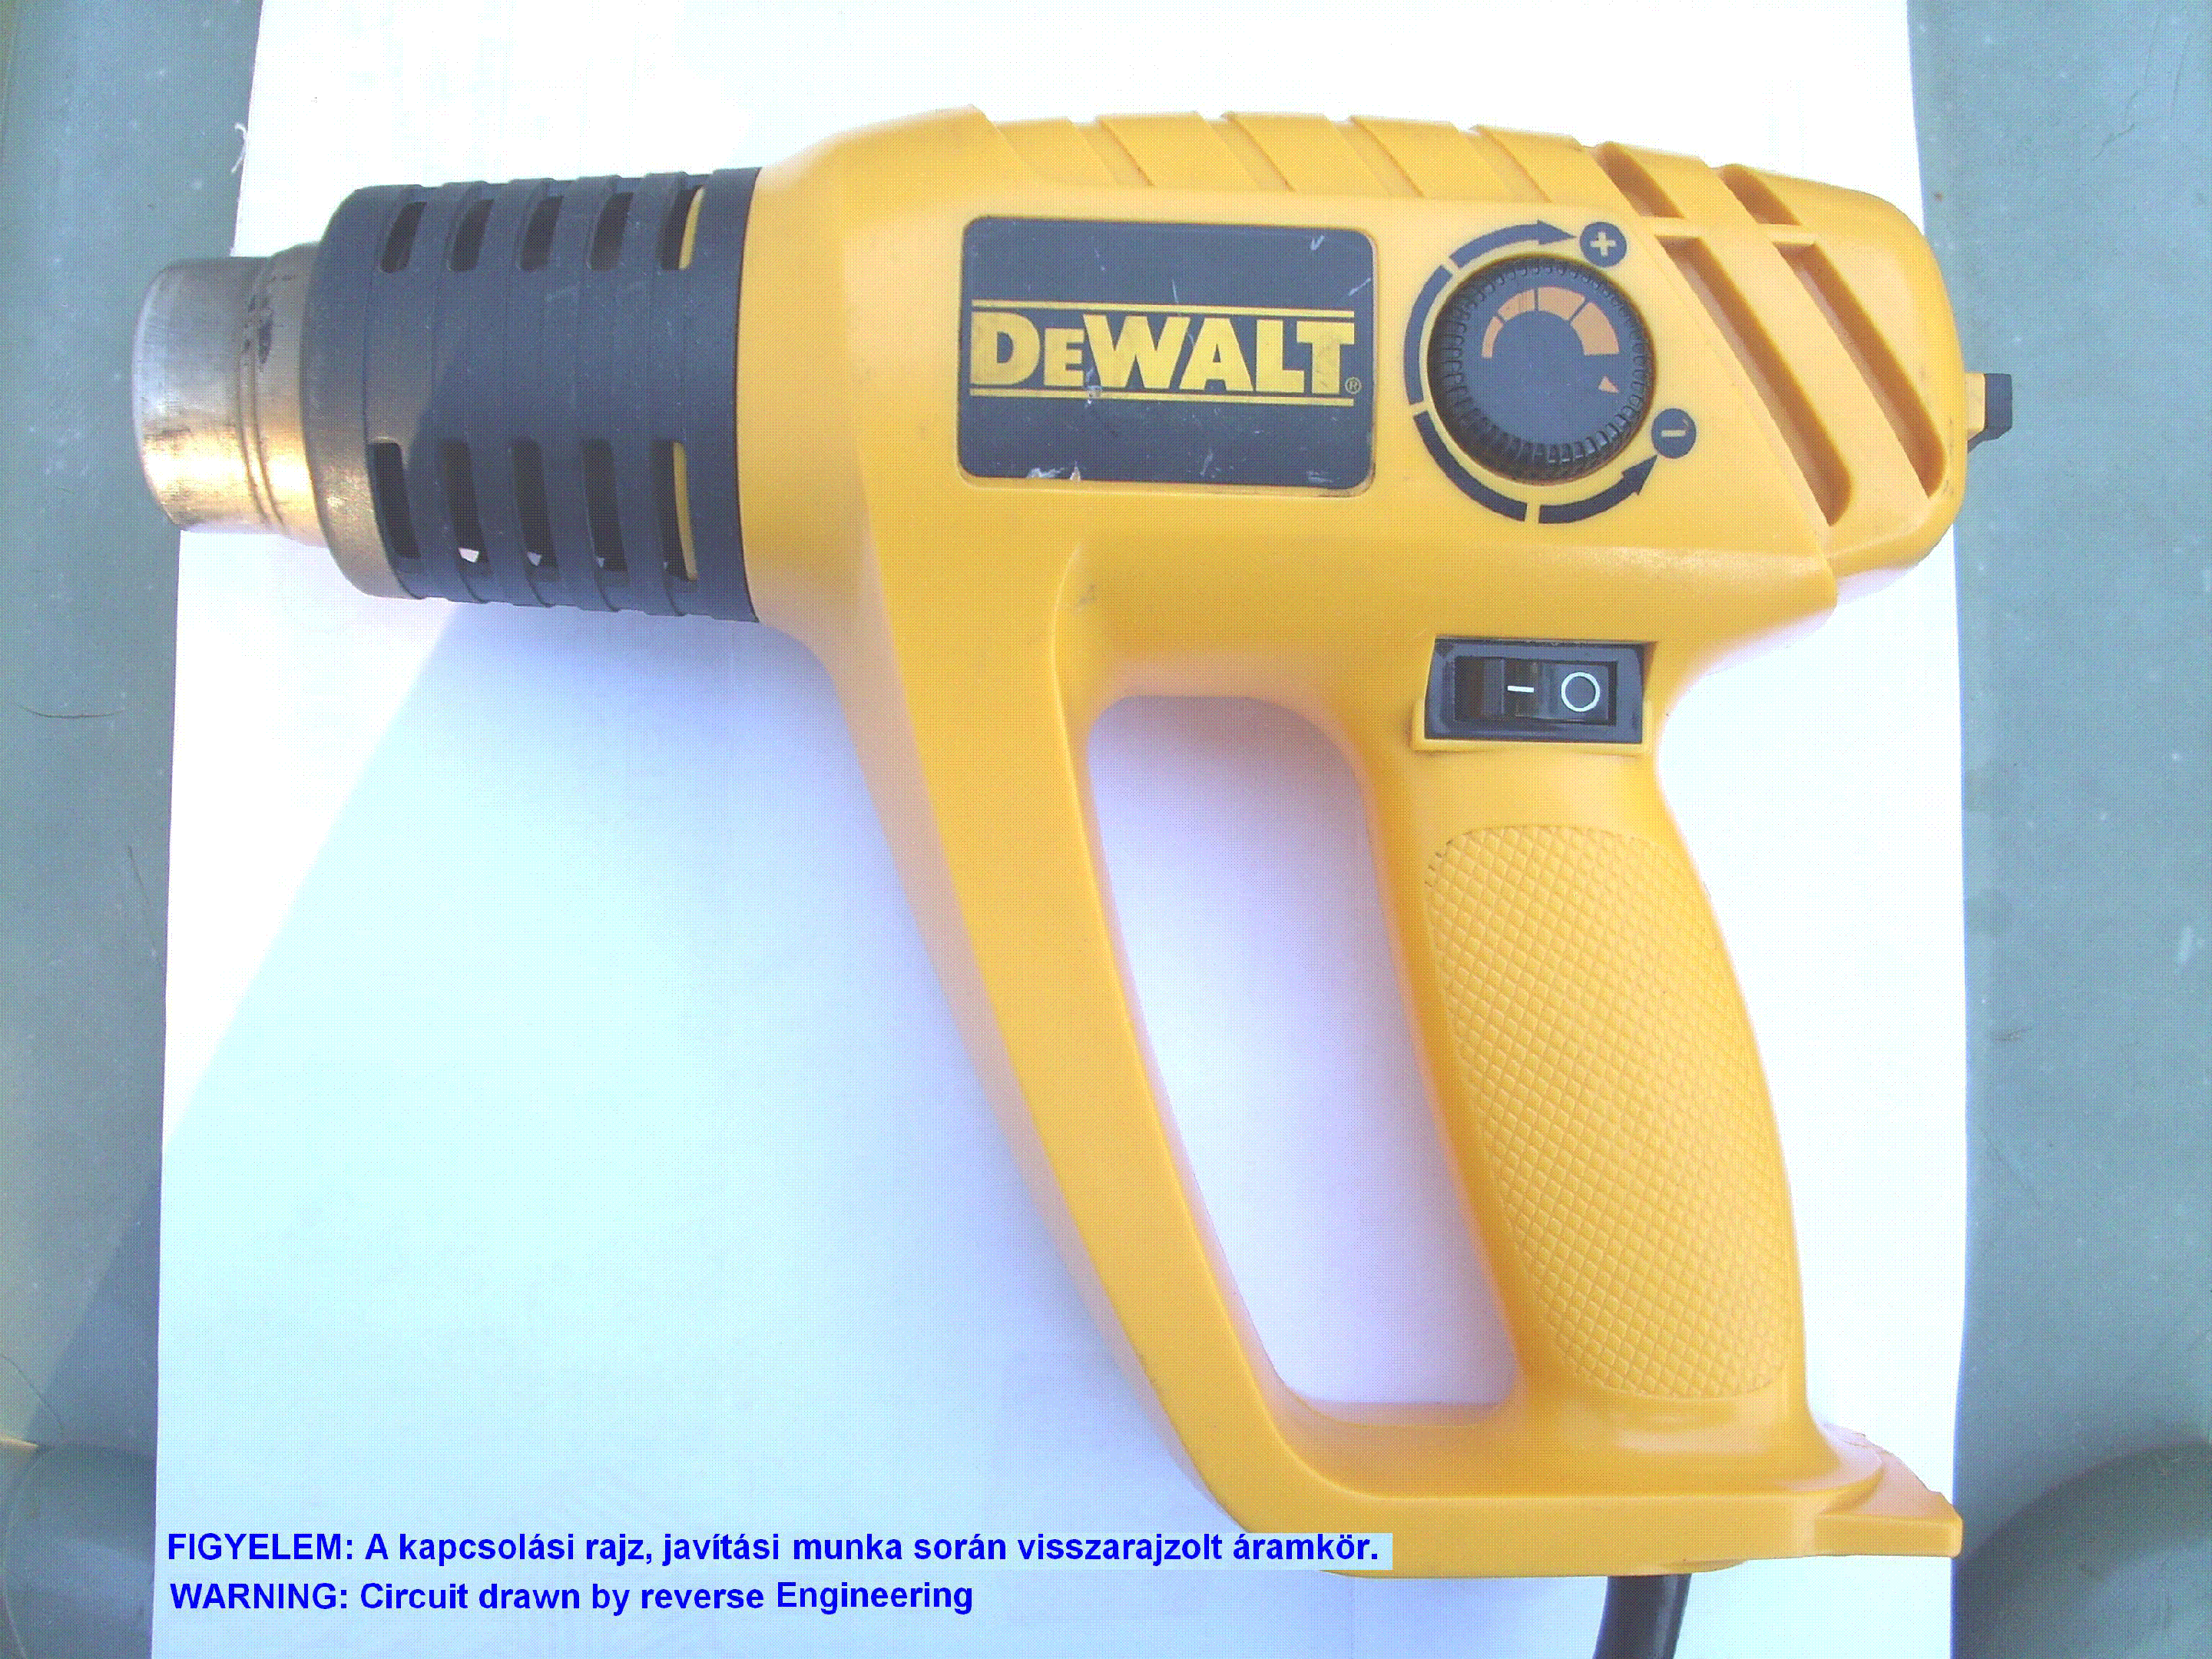 Dewalt De9116 Battery Charger Sch Service Manual Download De Walt Power Tool Wiring Diagrams